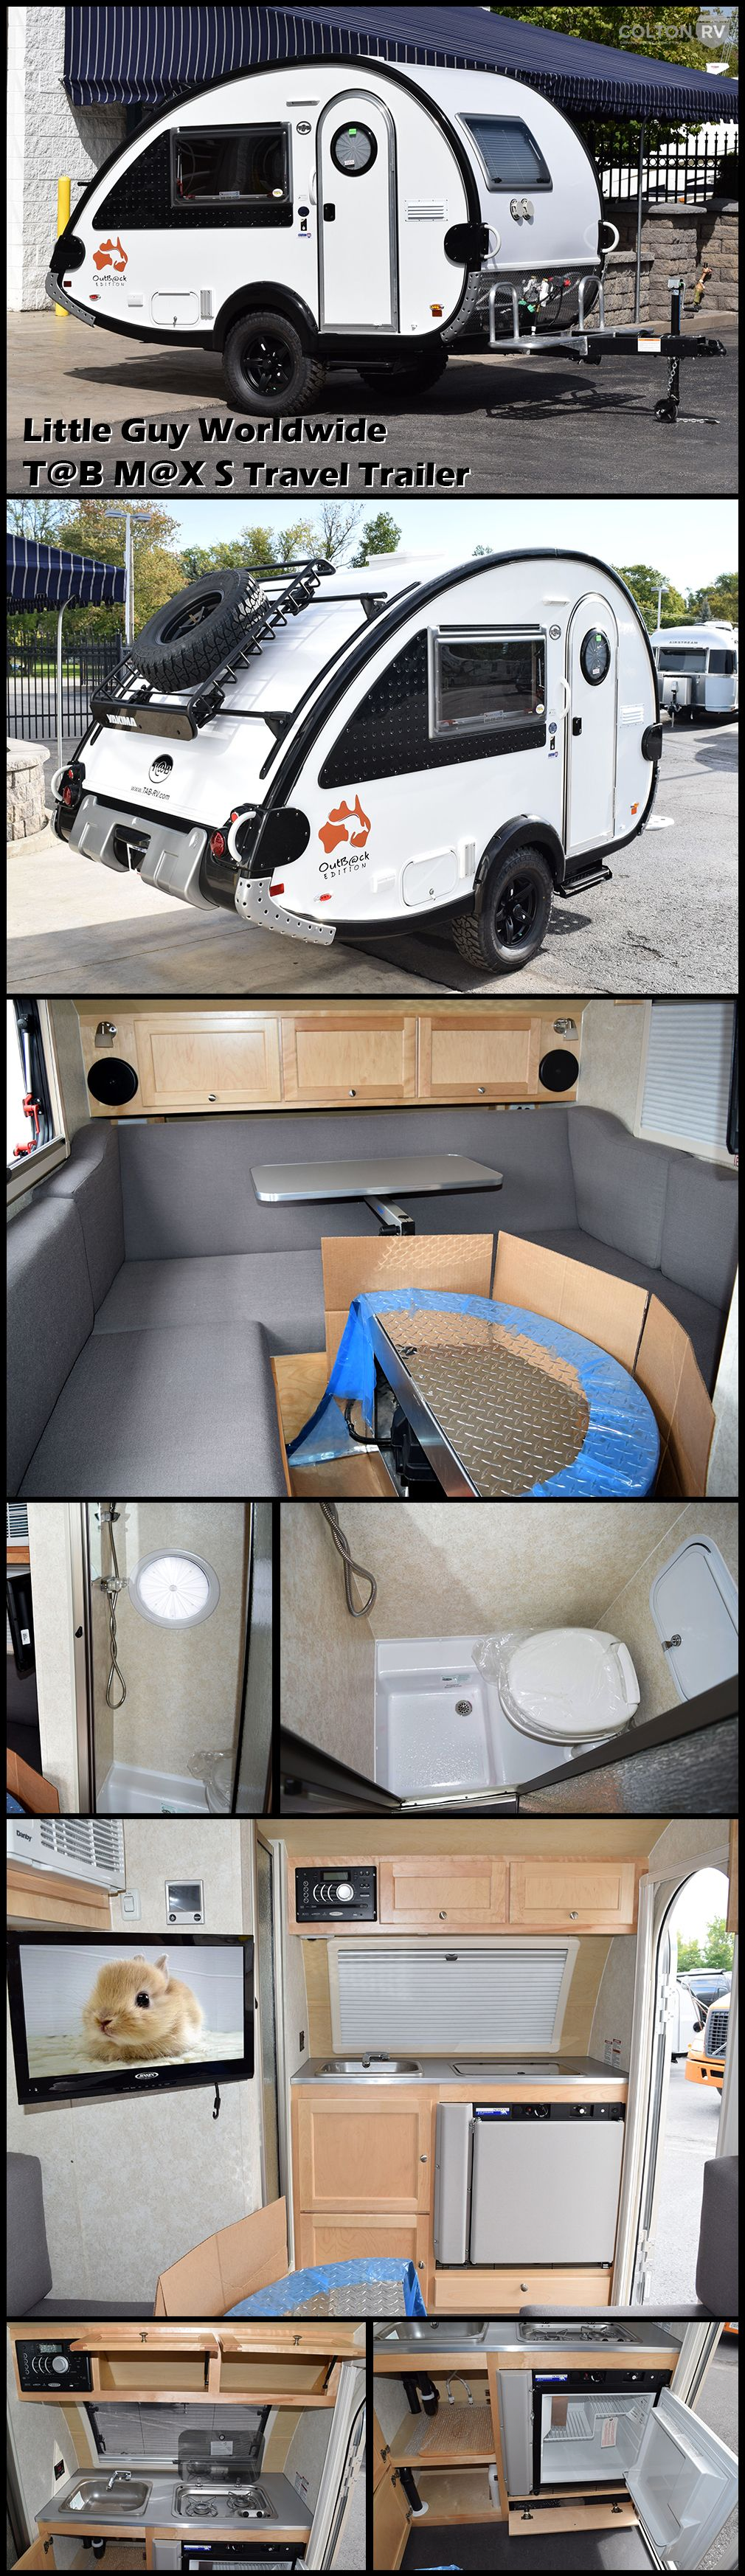 The LITTLE GUY WORLDWIDE T@B M@X S Teardrop Travel Trailer offers the lite footprint of teardrop camping without sacrificing your own personal toilet and shower. The S offers the traditional U kitchen and sleeping areas with the AC mounted on the wall.